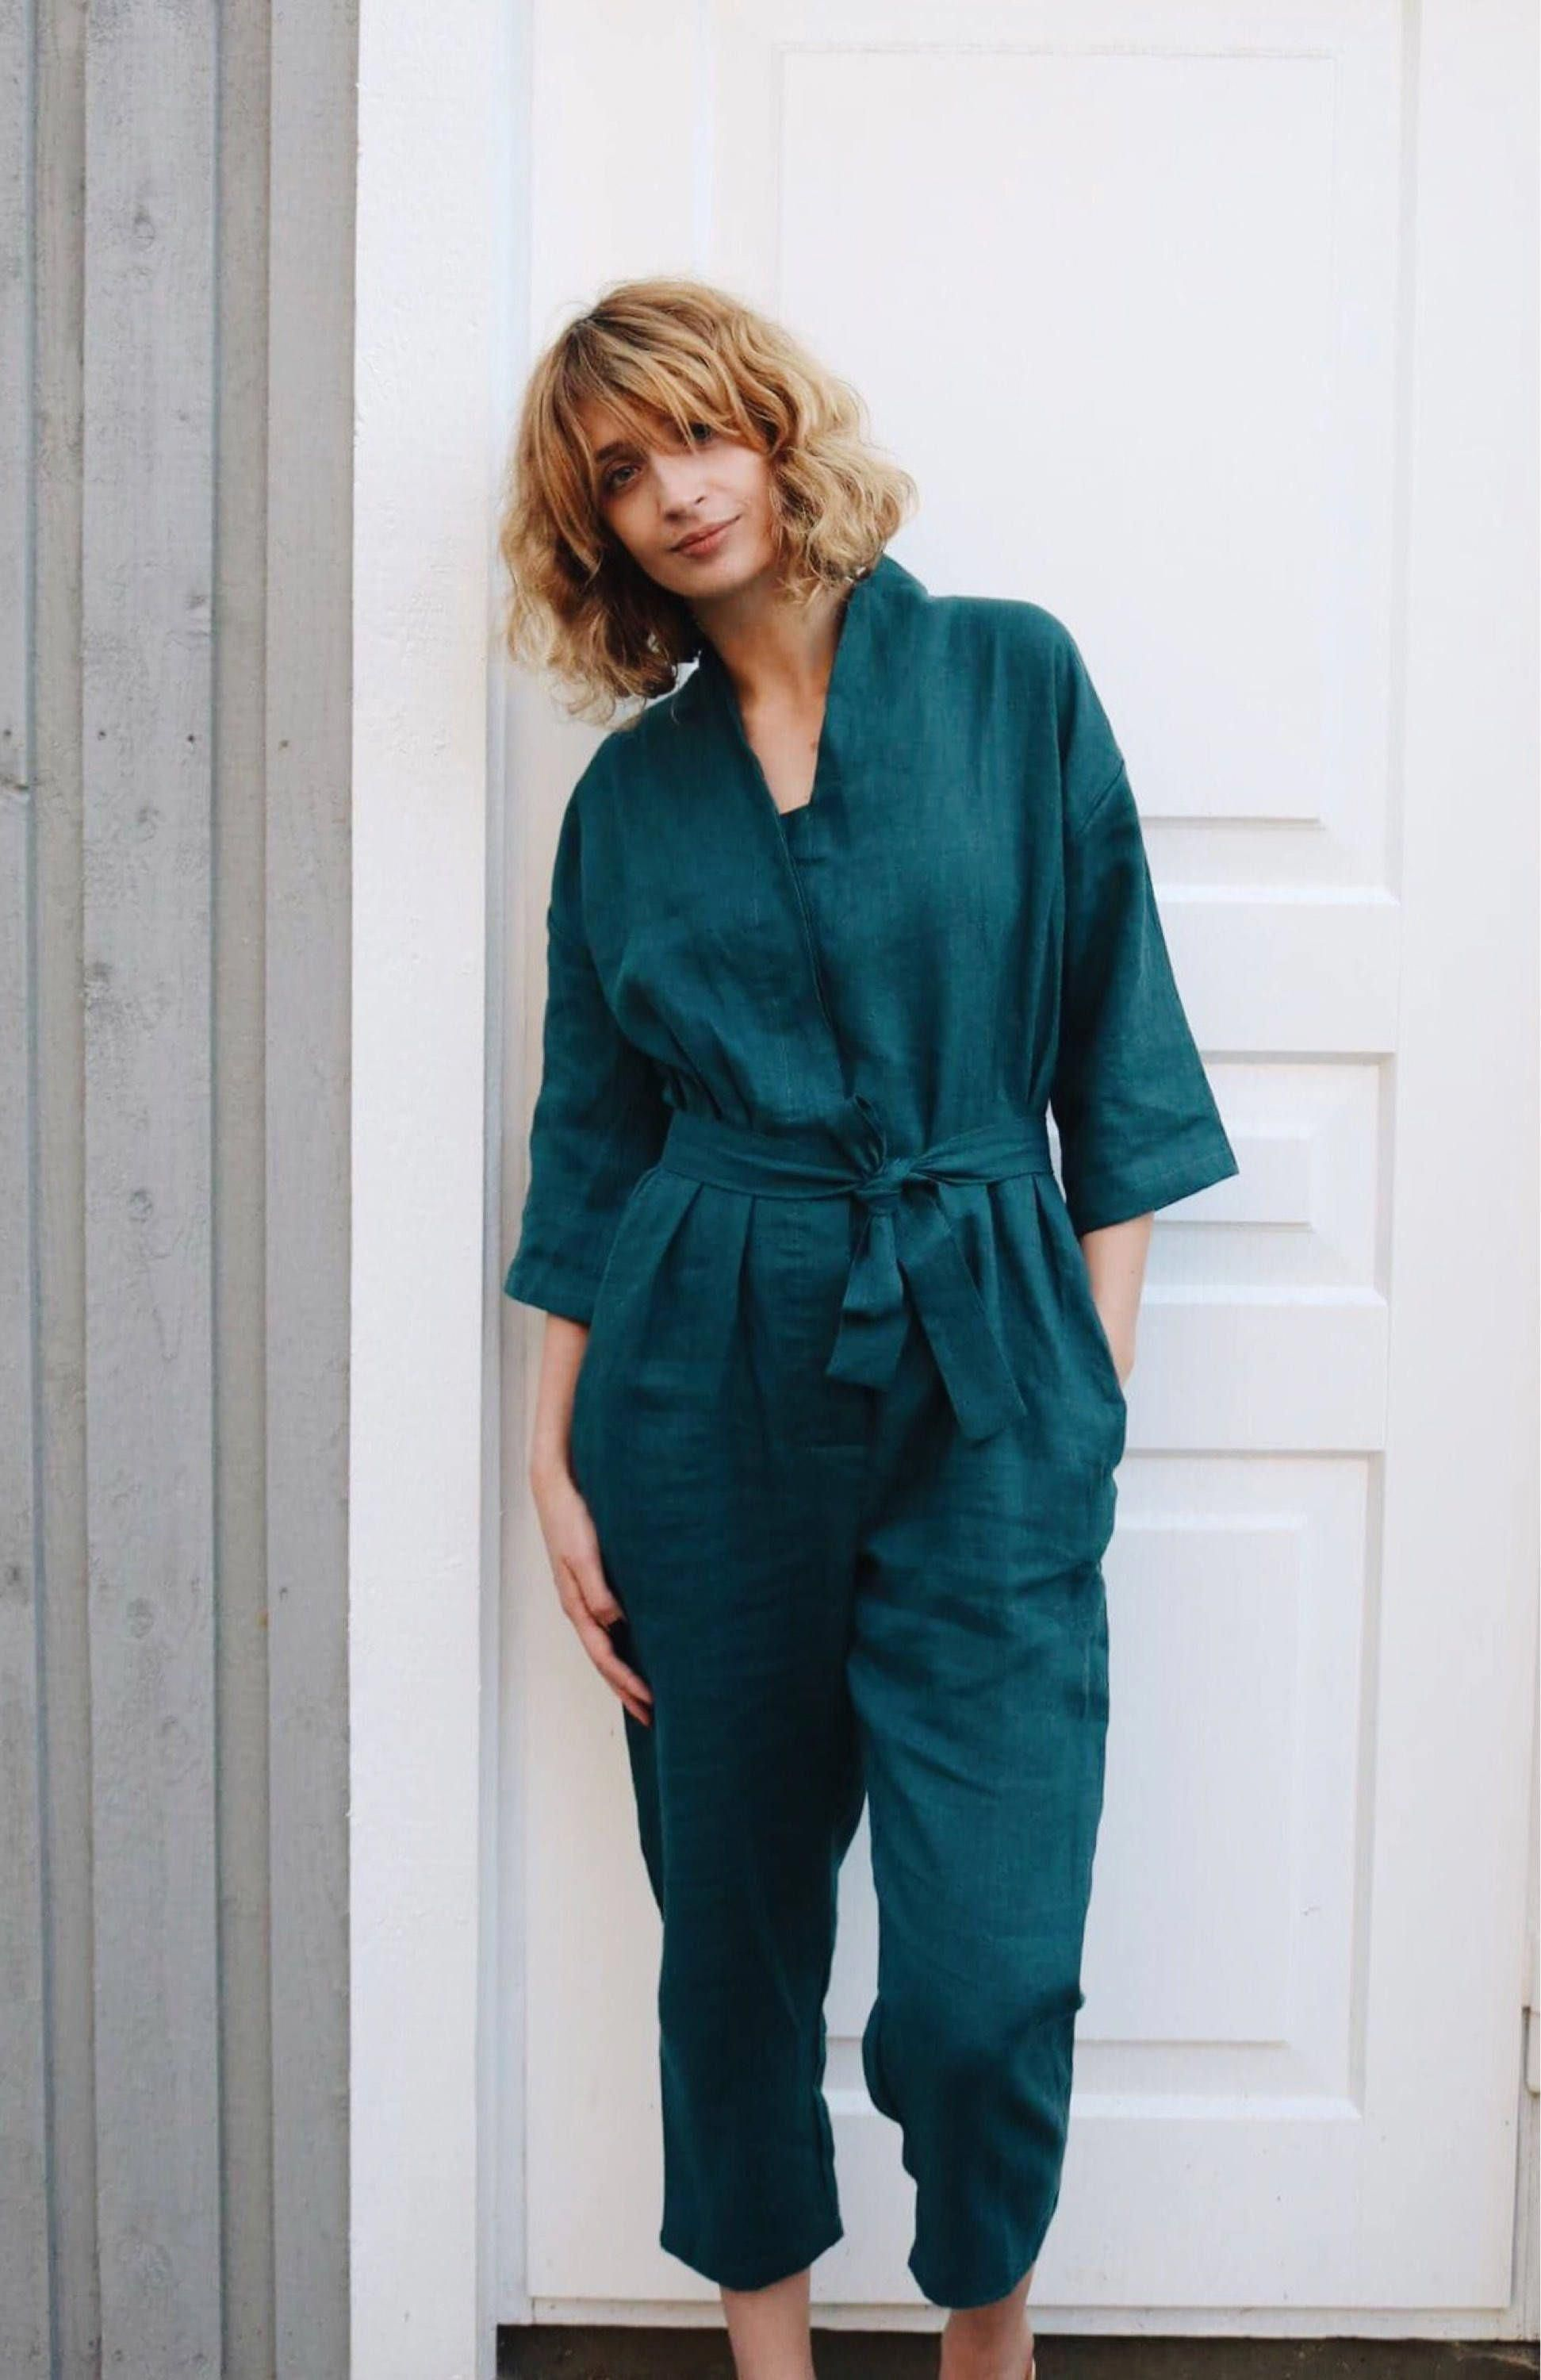 6d0c8c71fe4 Dark Turquoise Kimono Jumpsuit - Kimono Linen Jumpsuit - Women Overall - Linen  Overall - Linen Romper - Handmade by OFFON by OffOn on Etsy